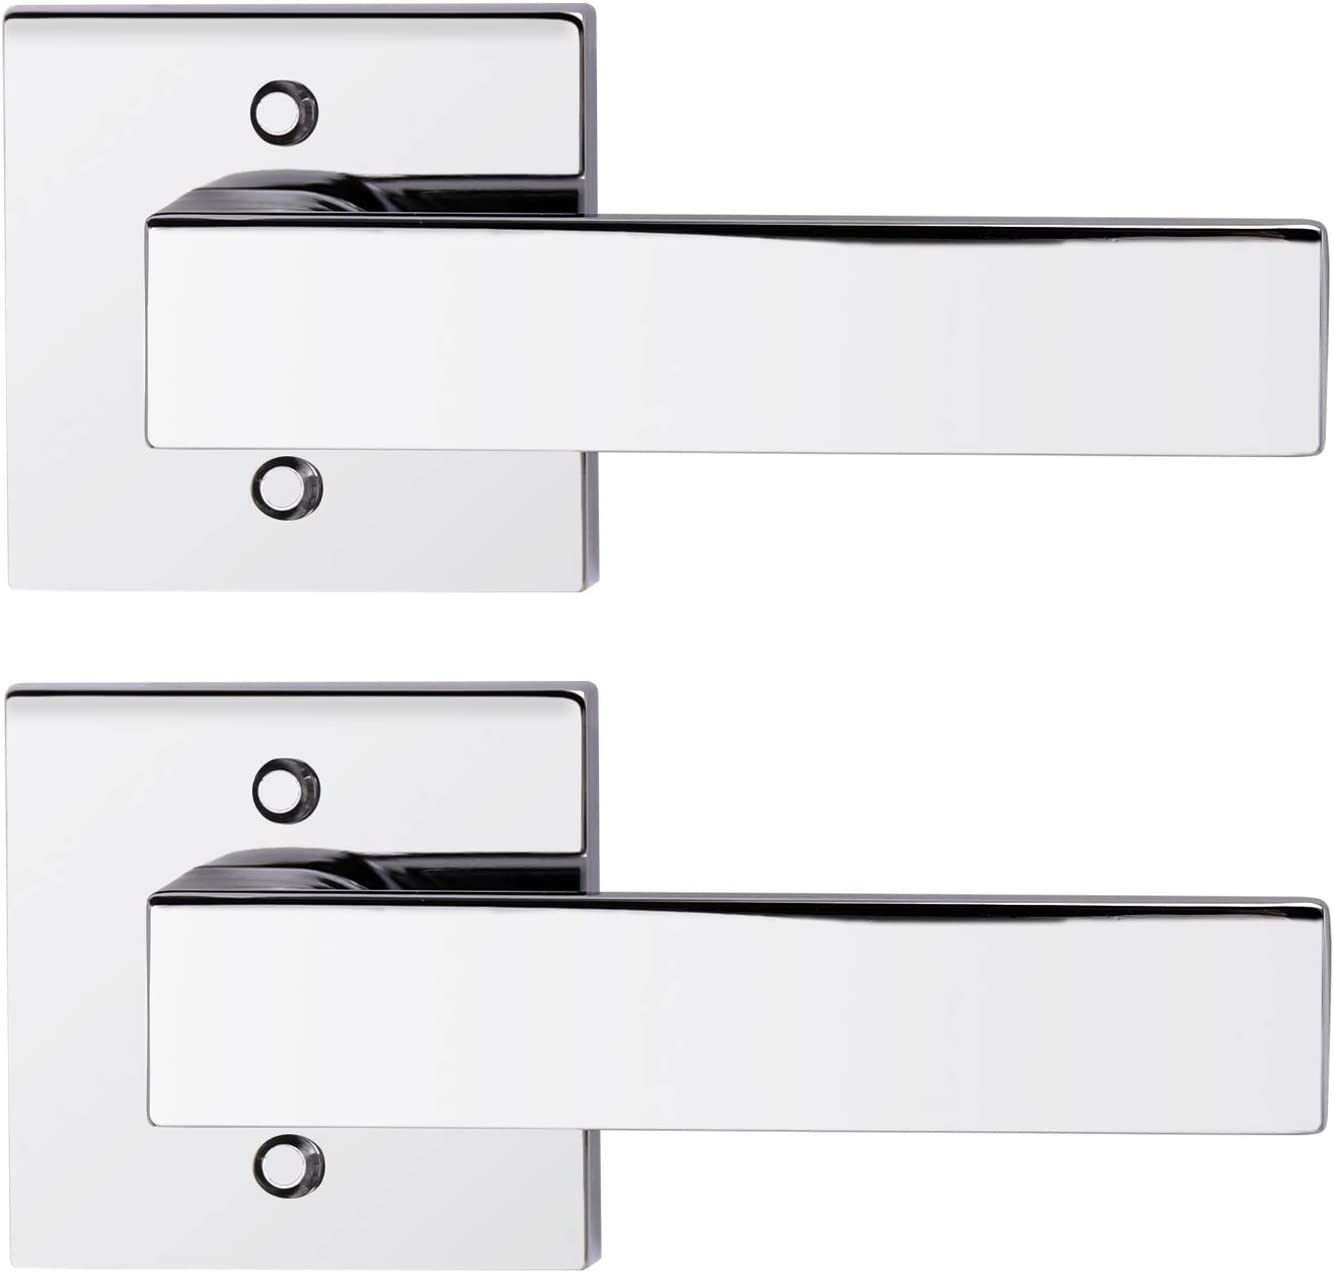 Special Campaign Gobrico Square Rosette Door Sale SALE% OFF Levers Handles in Pol Dummy Function